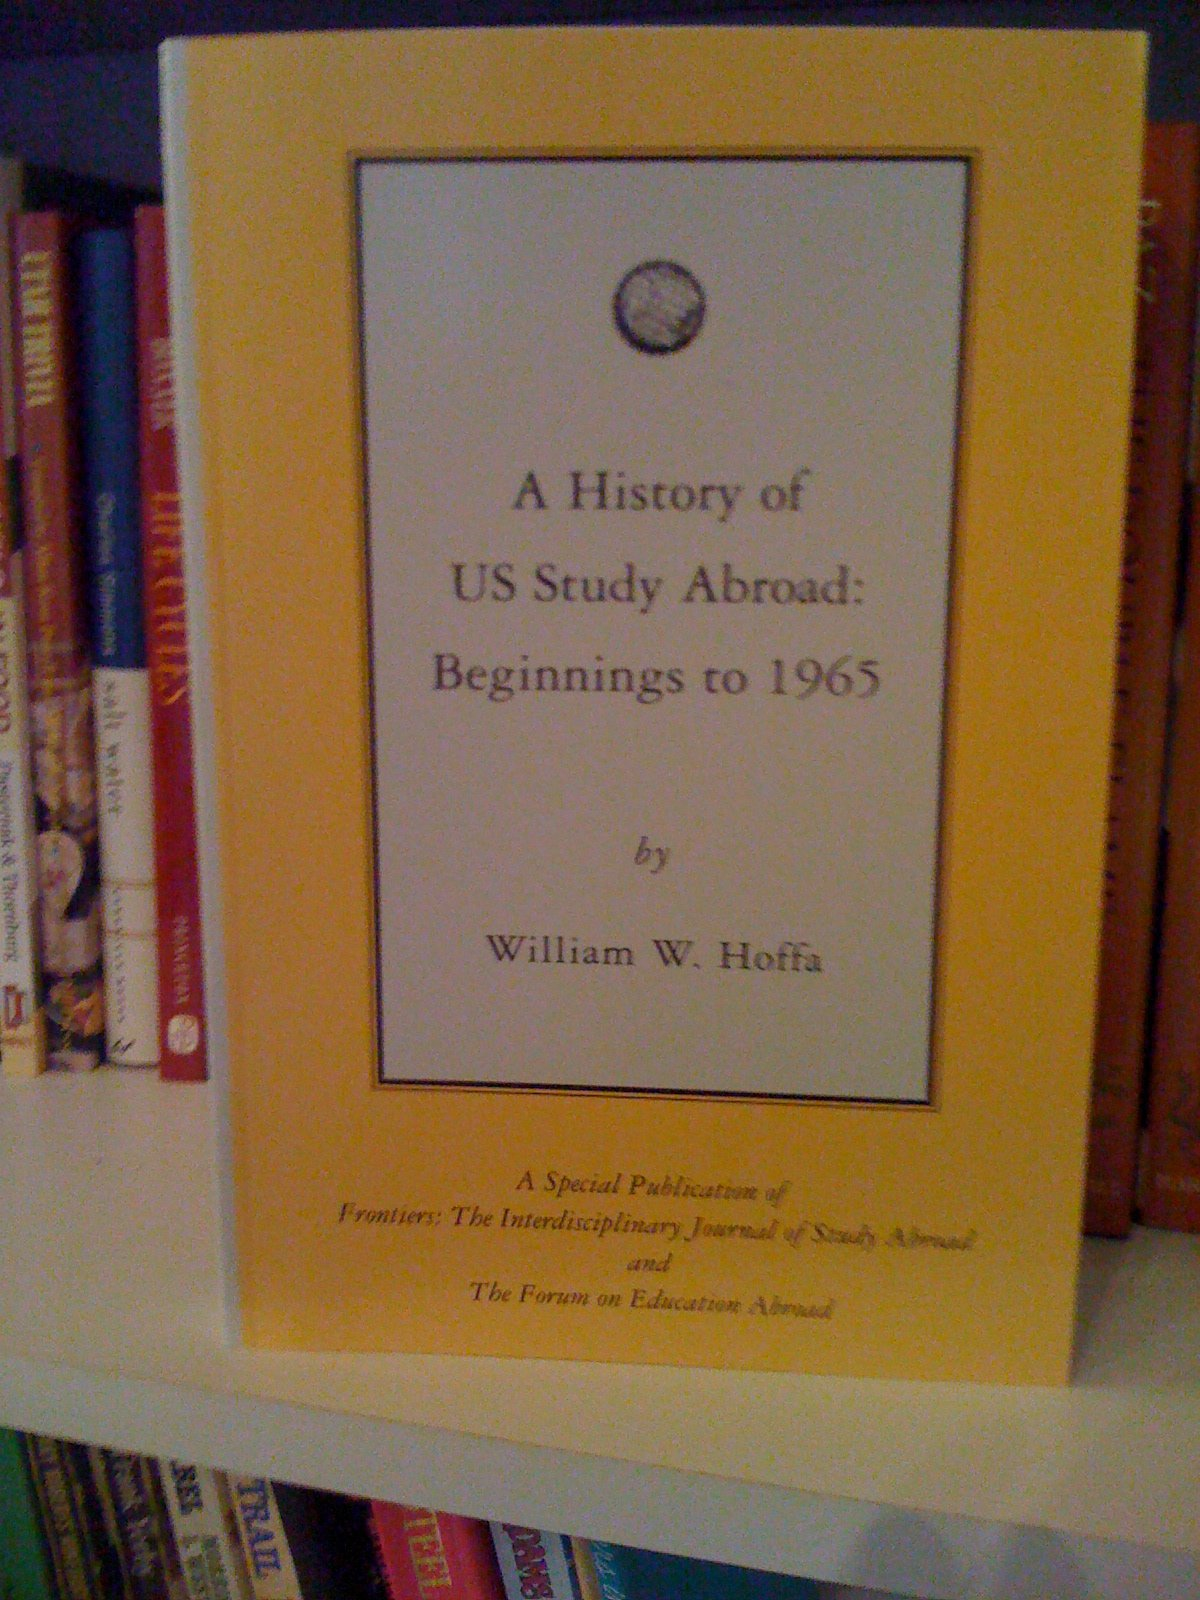 A History of US Study Abroad: Beginnings to 1965 (Paperback - 2000